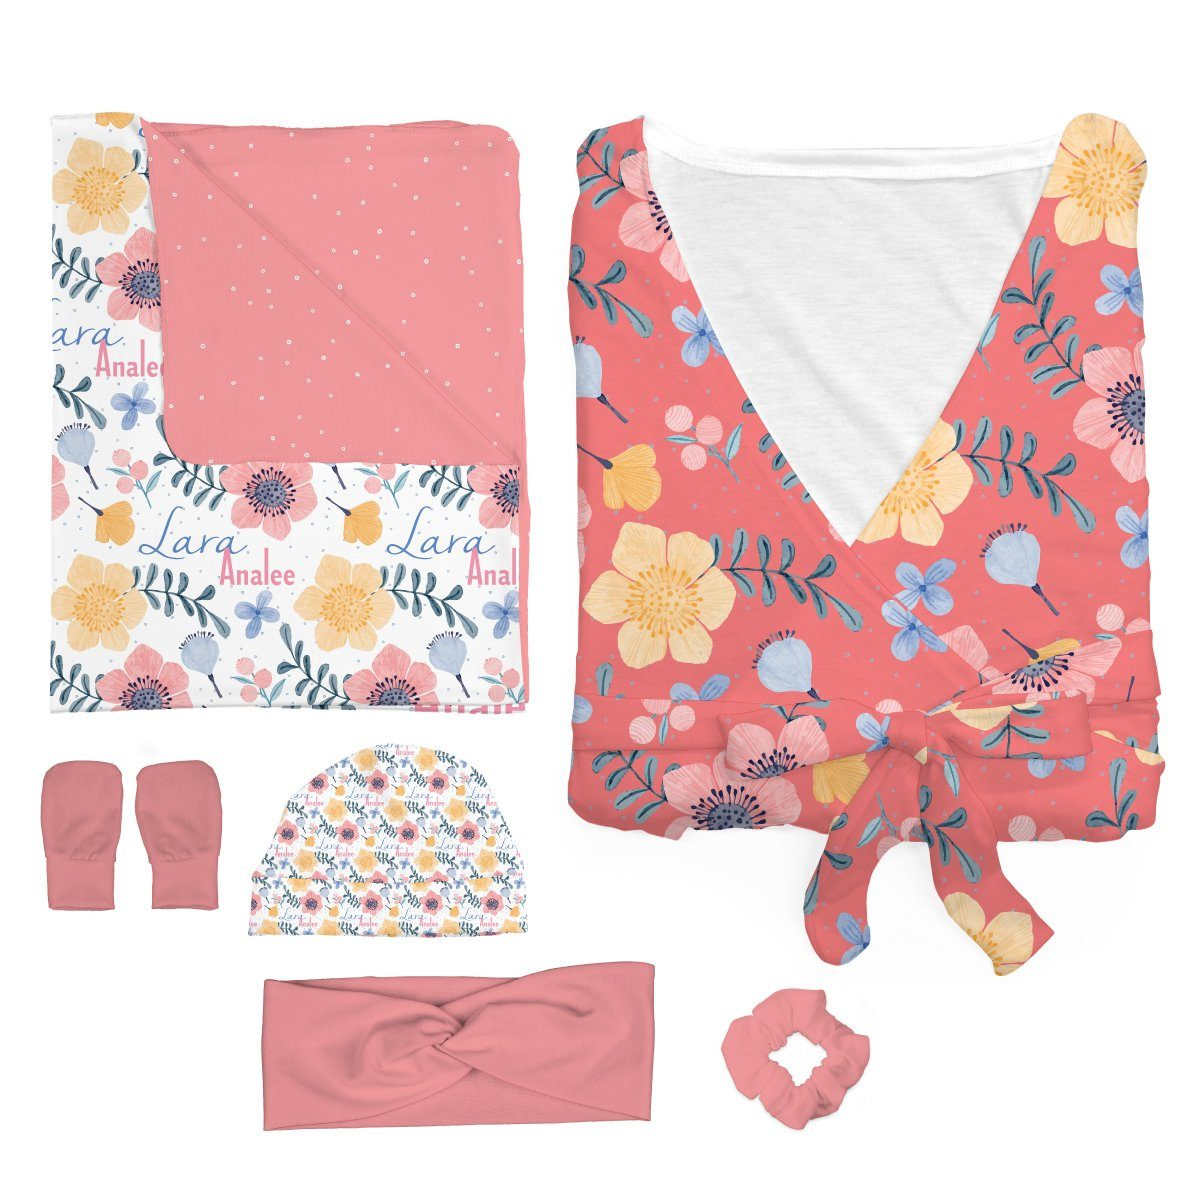 Lara's Fairy Floral  | Mommy & Me Bundle